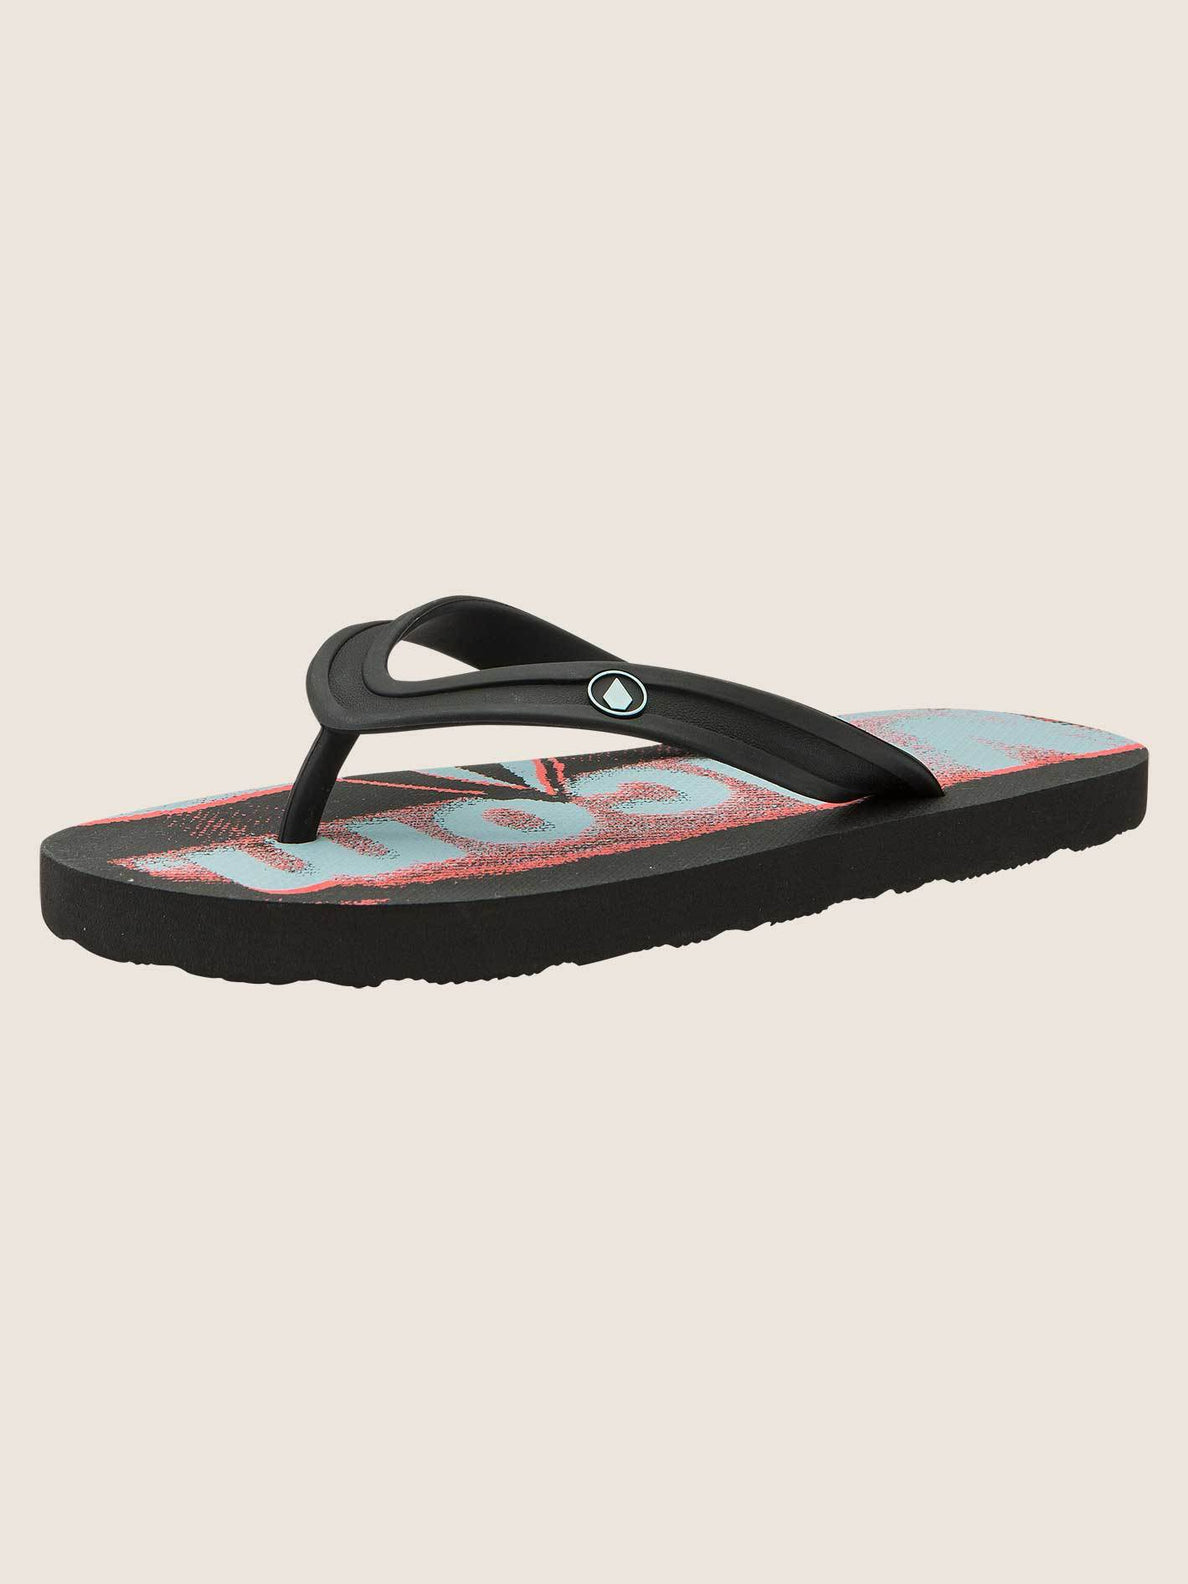 Big Boys Rocker 2 Sandals In Electric Coral, Back View